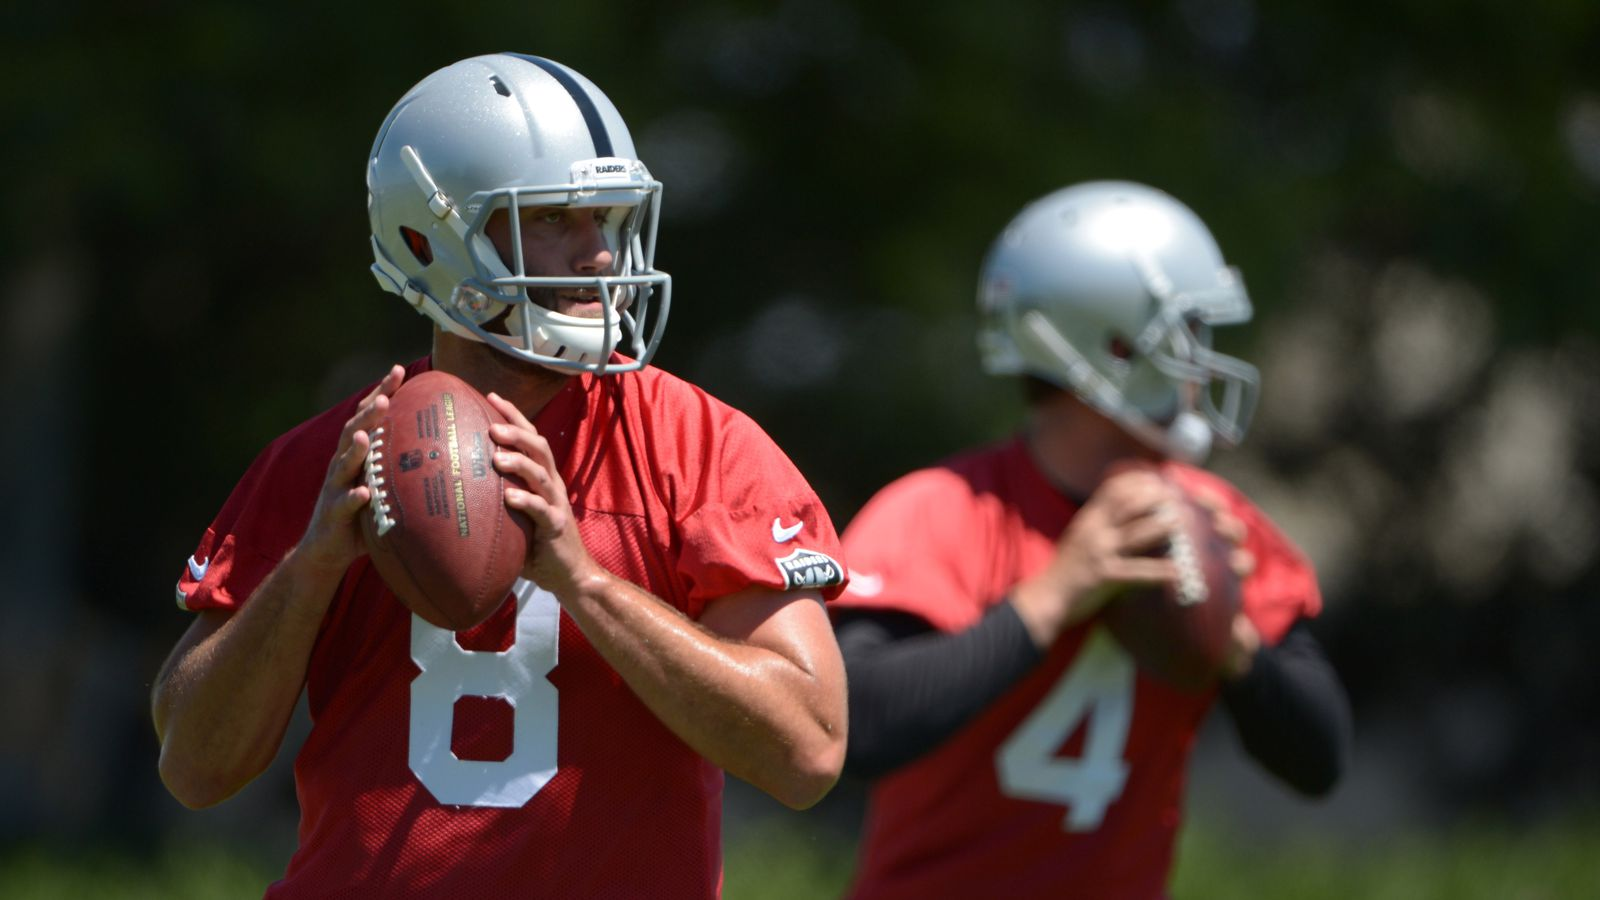 Schaub, Carr and McGloin: Who's your starter?